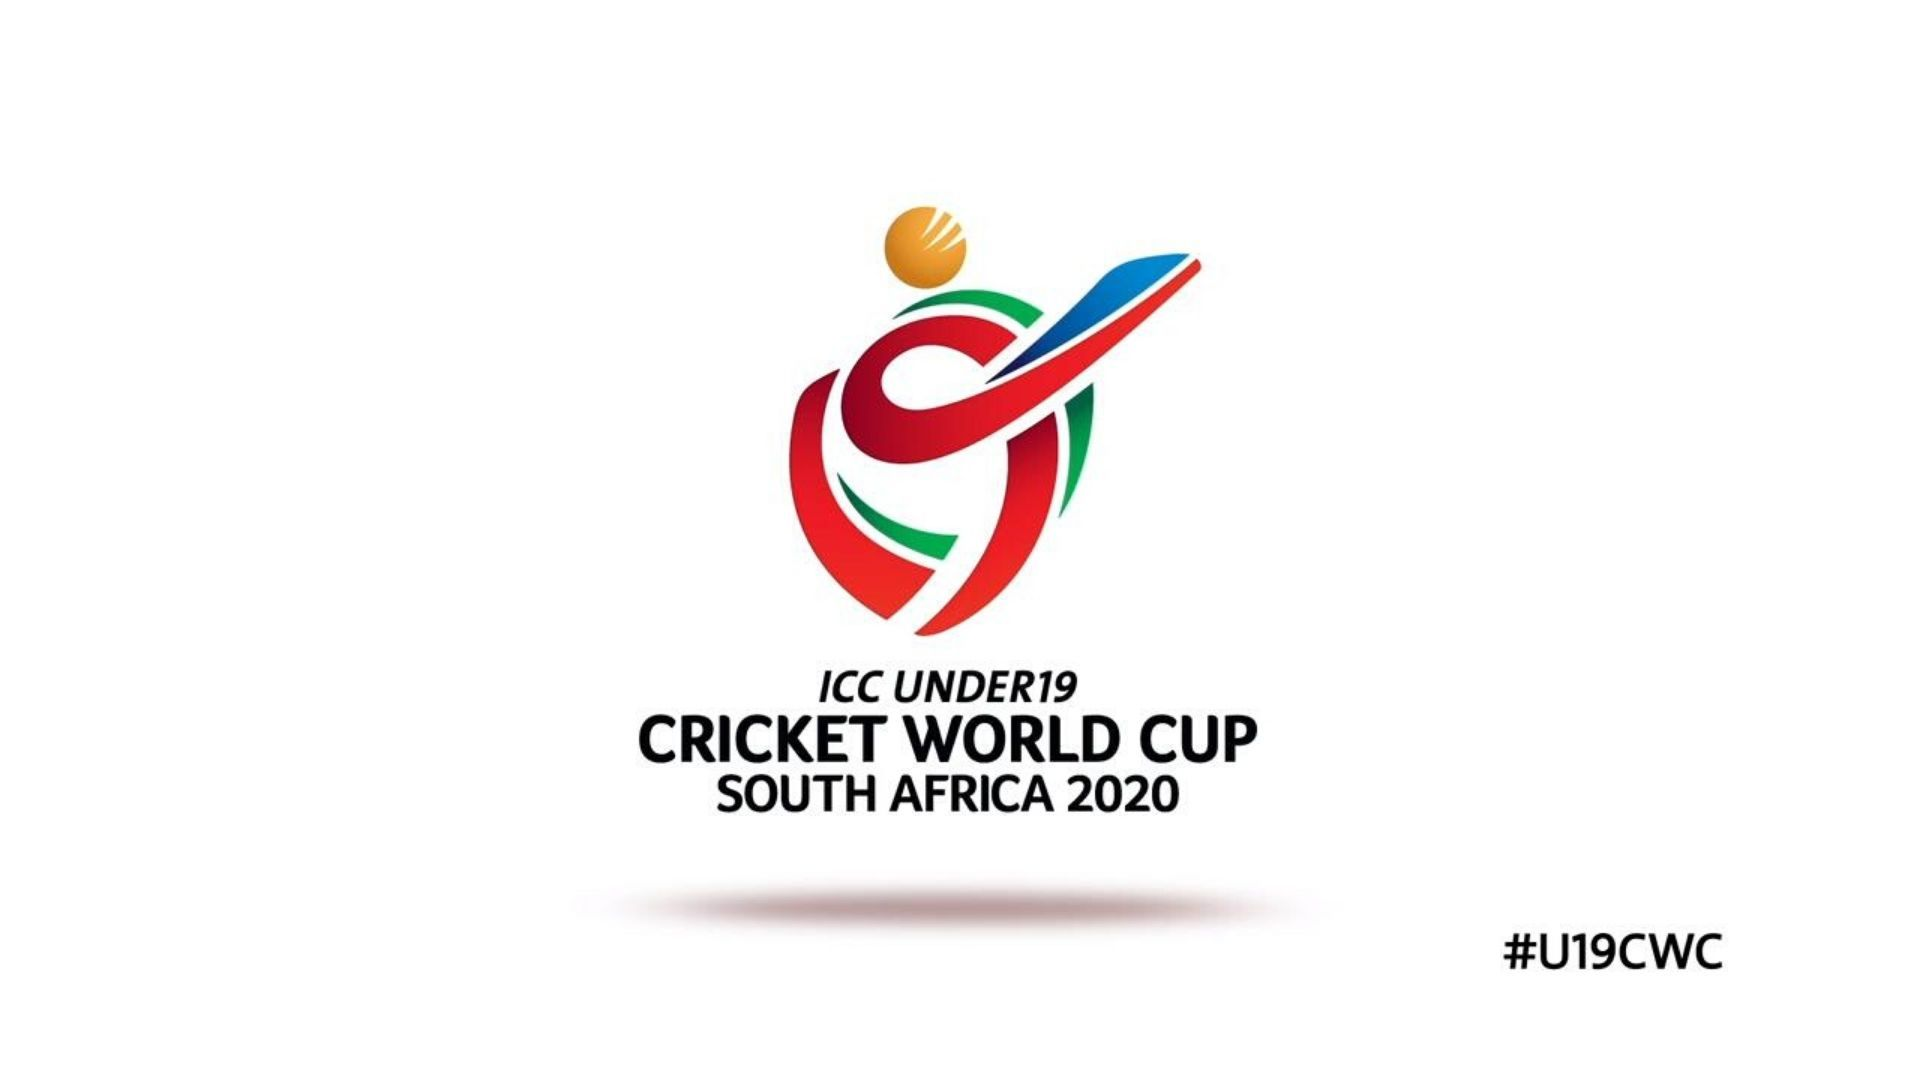 Pin On Icc U19 Cricket World Cup 2020